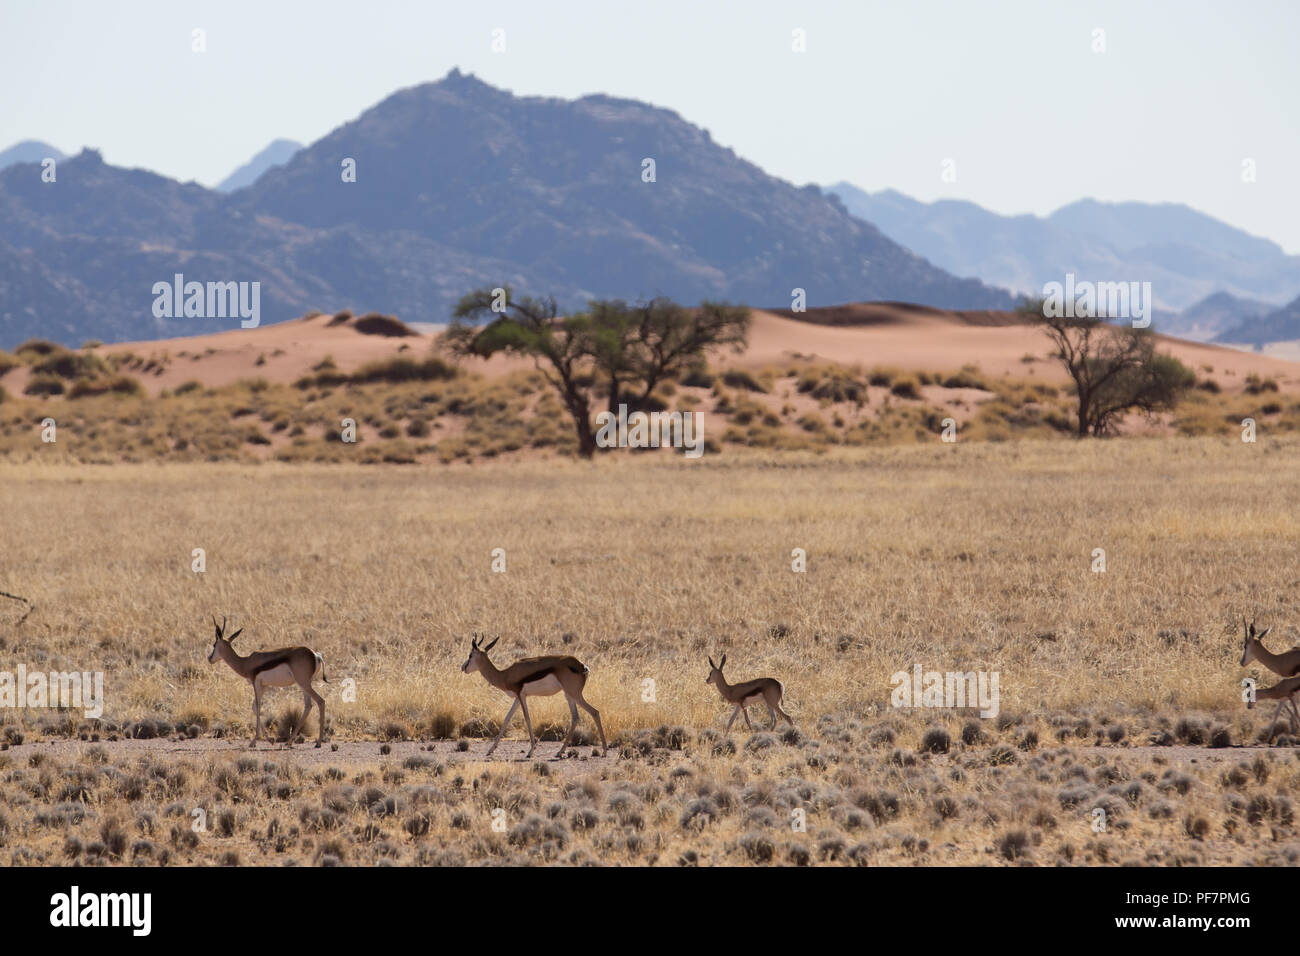 some antelope eating in the savanna of africa in the wild nature - Stock Image